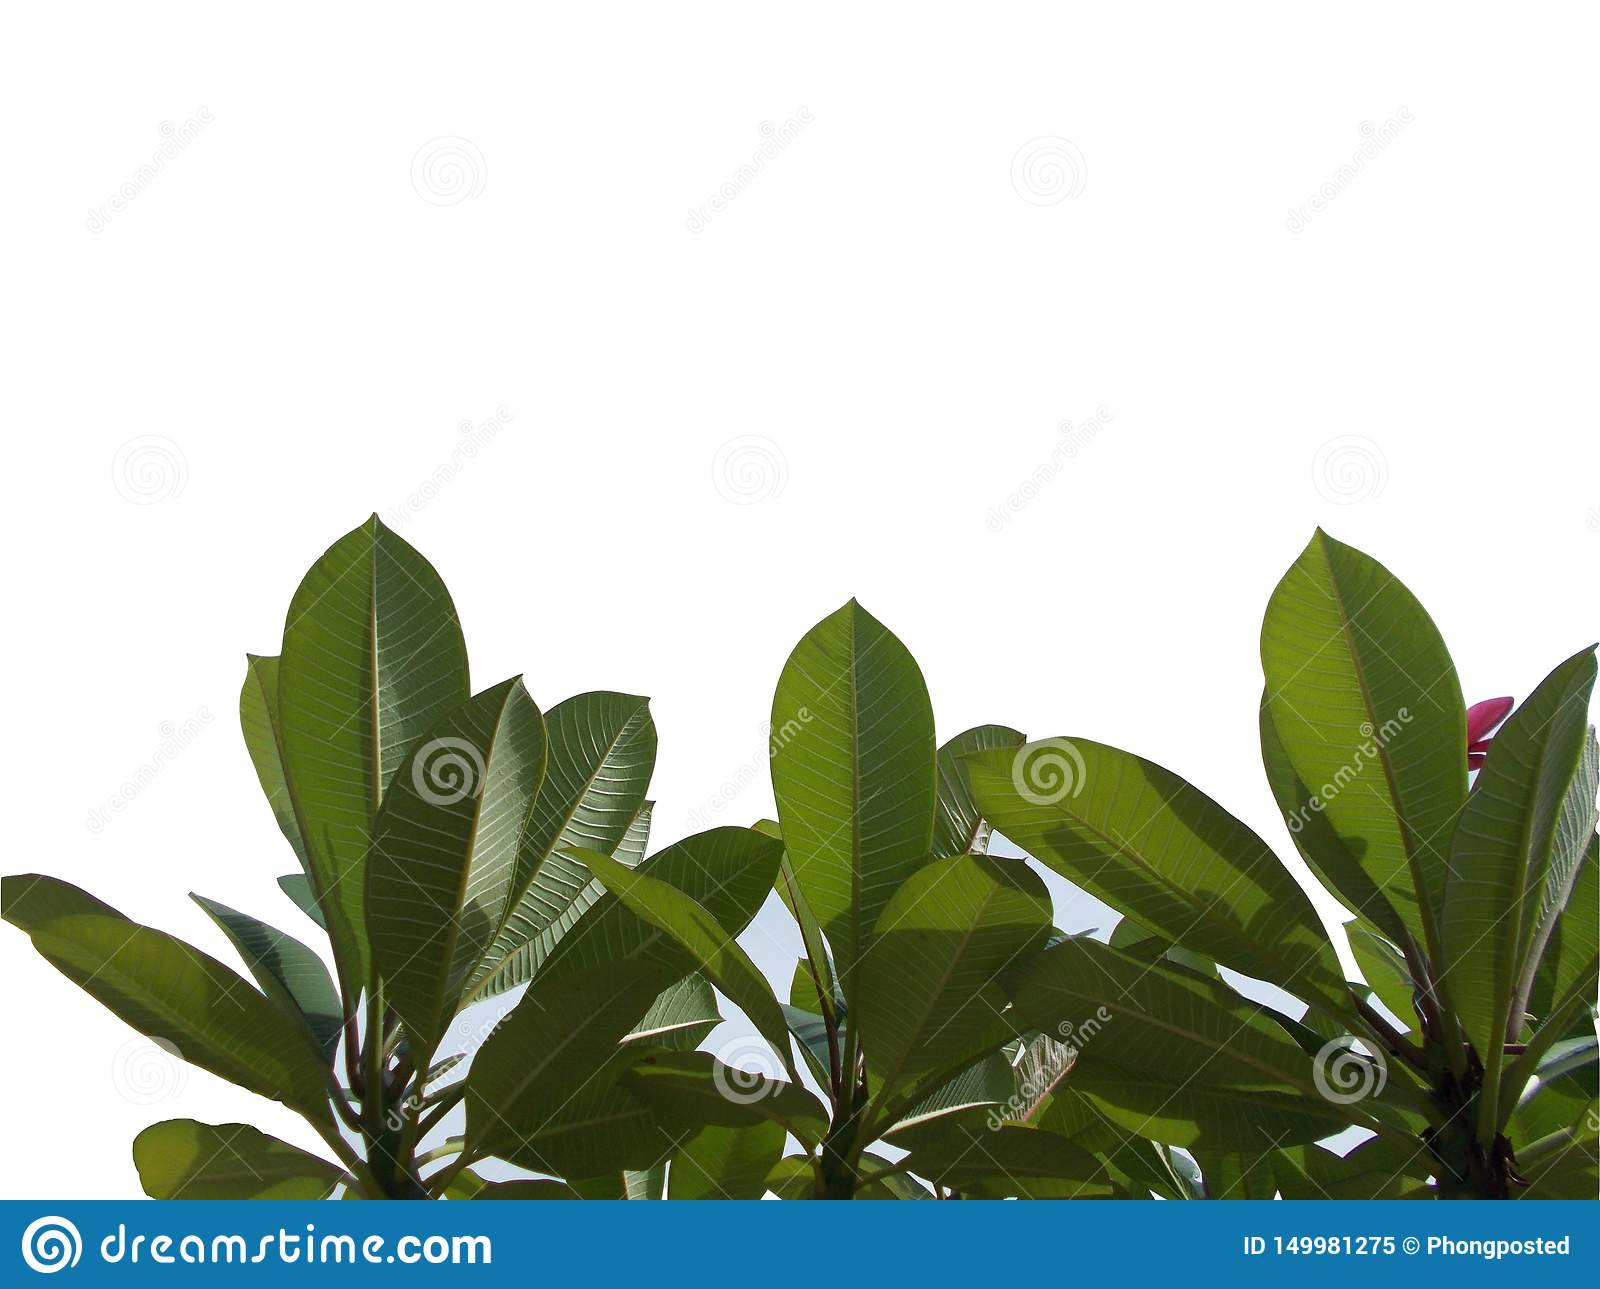 Top view tree tropical leaf with branches isolated on white backgrounds,green foliage for backdrop